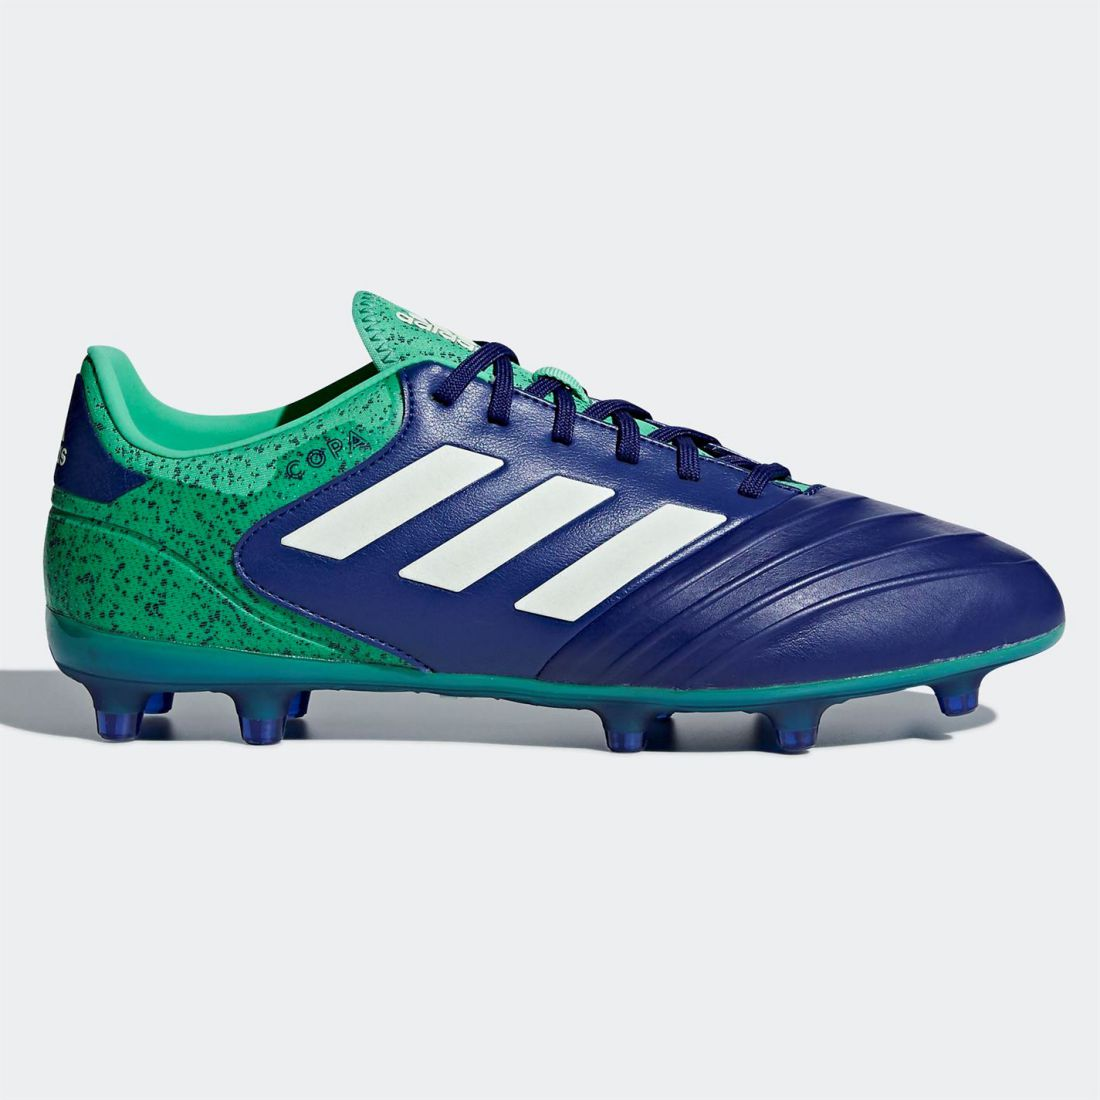 066d86774 adidas Mens Copa 18.2 FG Football Boots Firm Ground Lace Up Padded Ankle  Collar